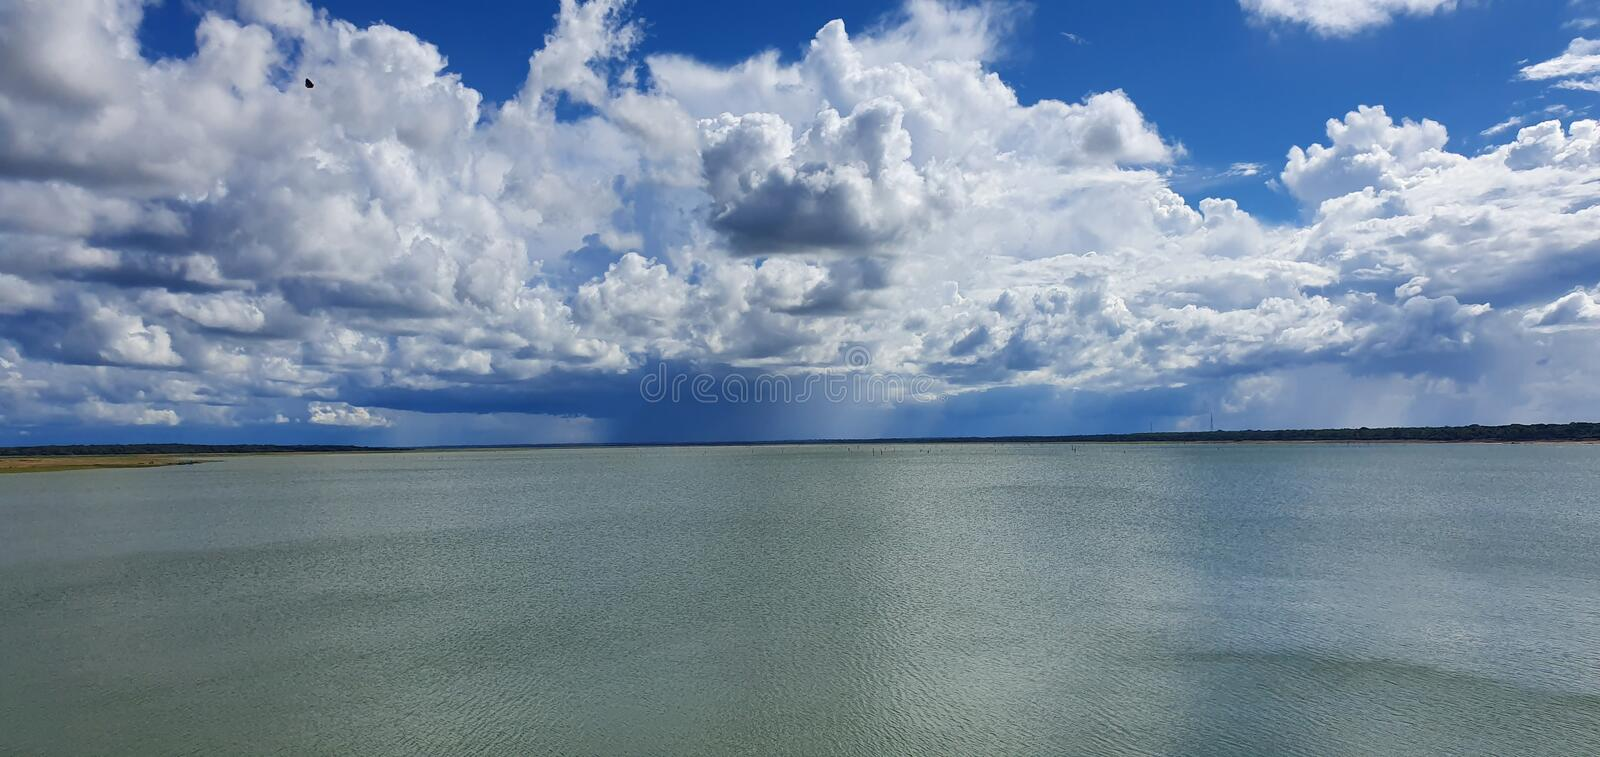 Nature Sky And Water stock image